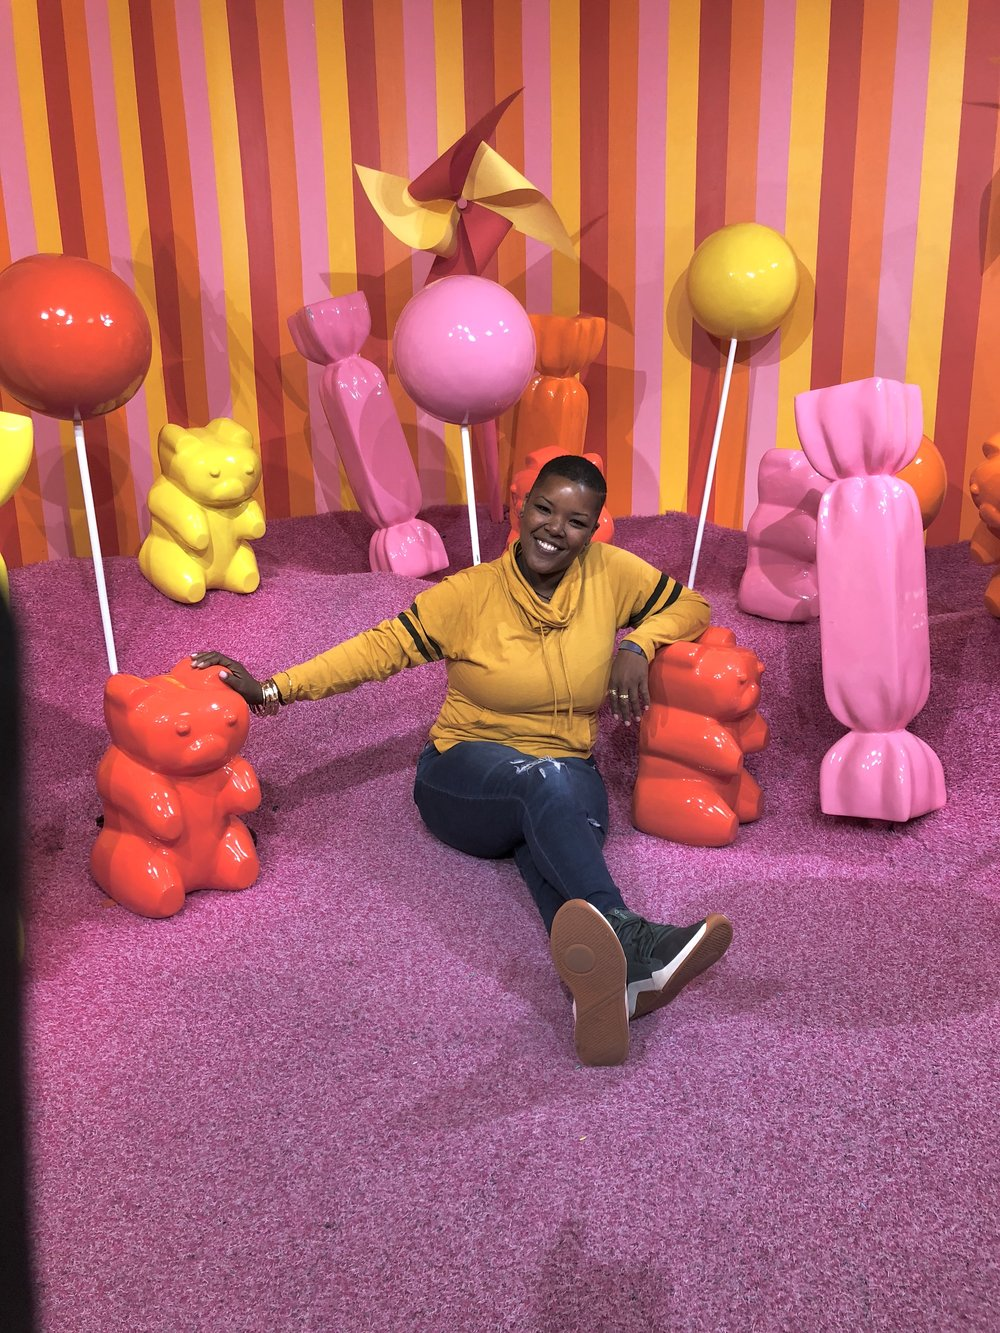 Yielding | Yearning | Yelling | Yolk | Yellow is bright | Yellow is light | Living . in . The . Yellow | Museum of Ice Cream, 2018 | #StayLIT